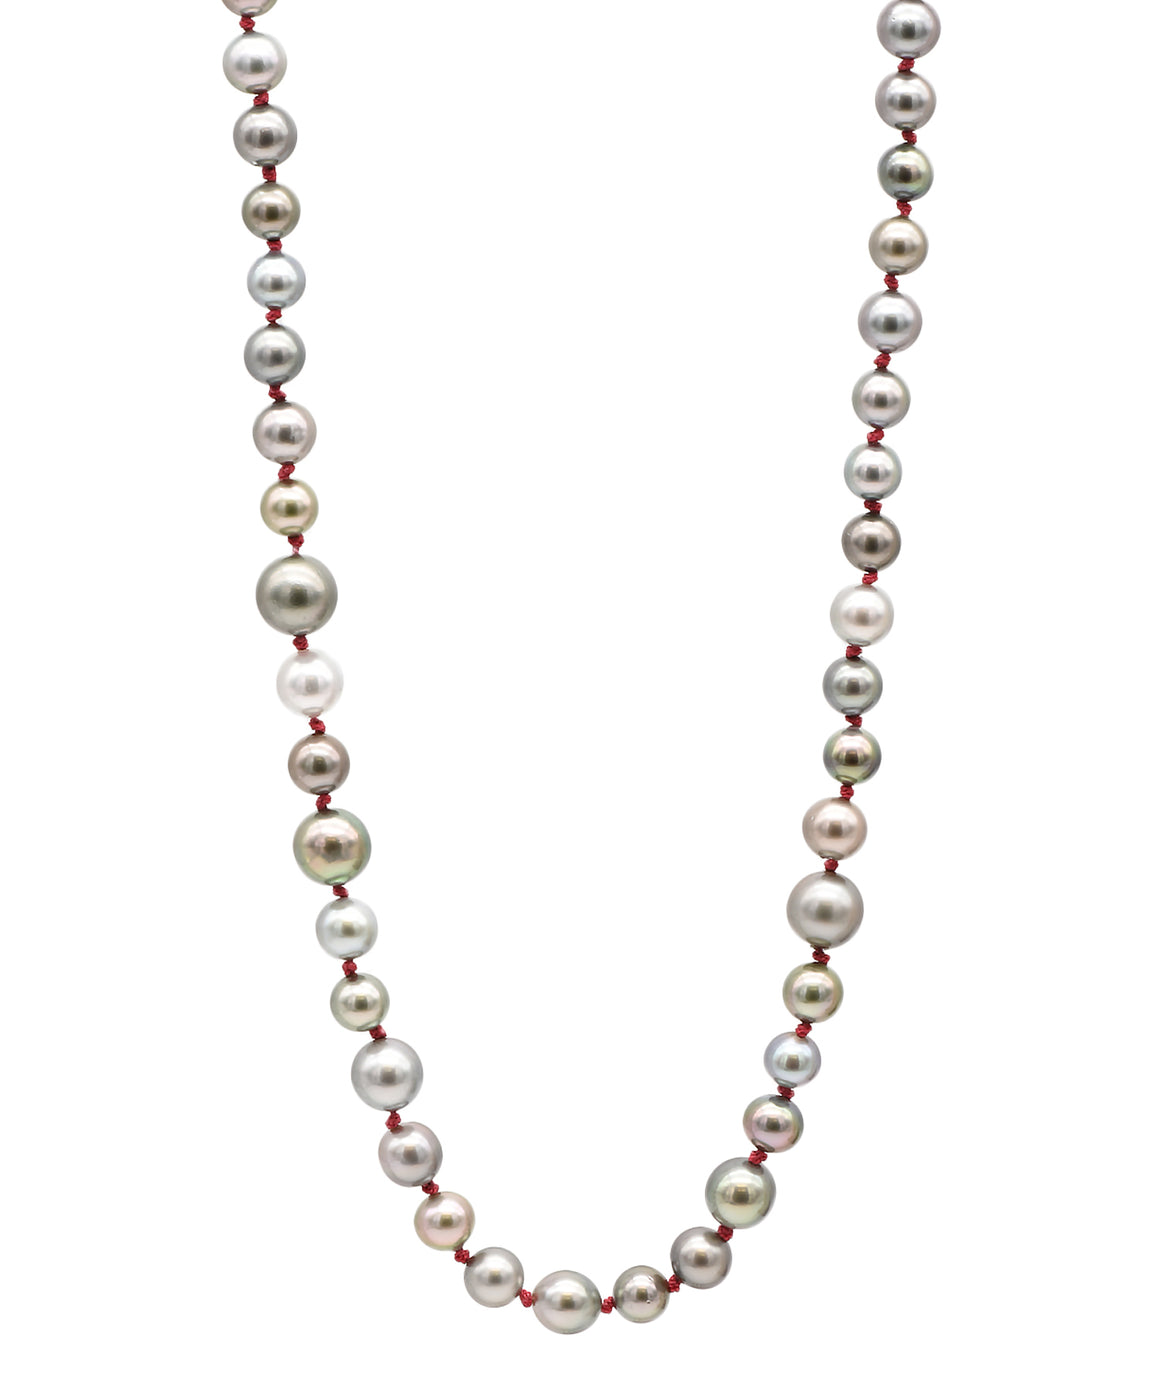 Multi Toned Pearl Necklace - Lesley Ann Jewels